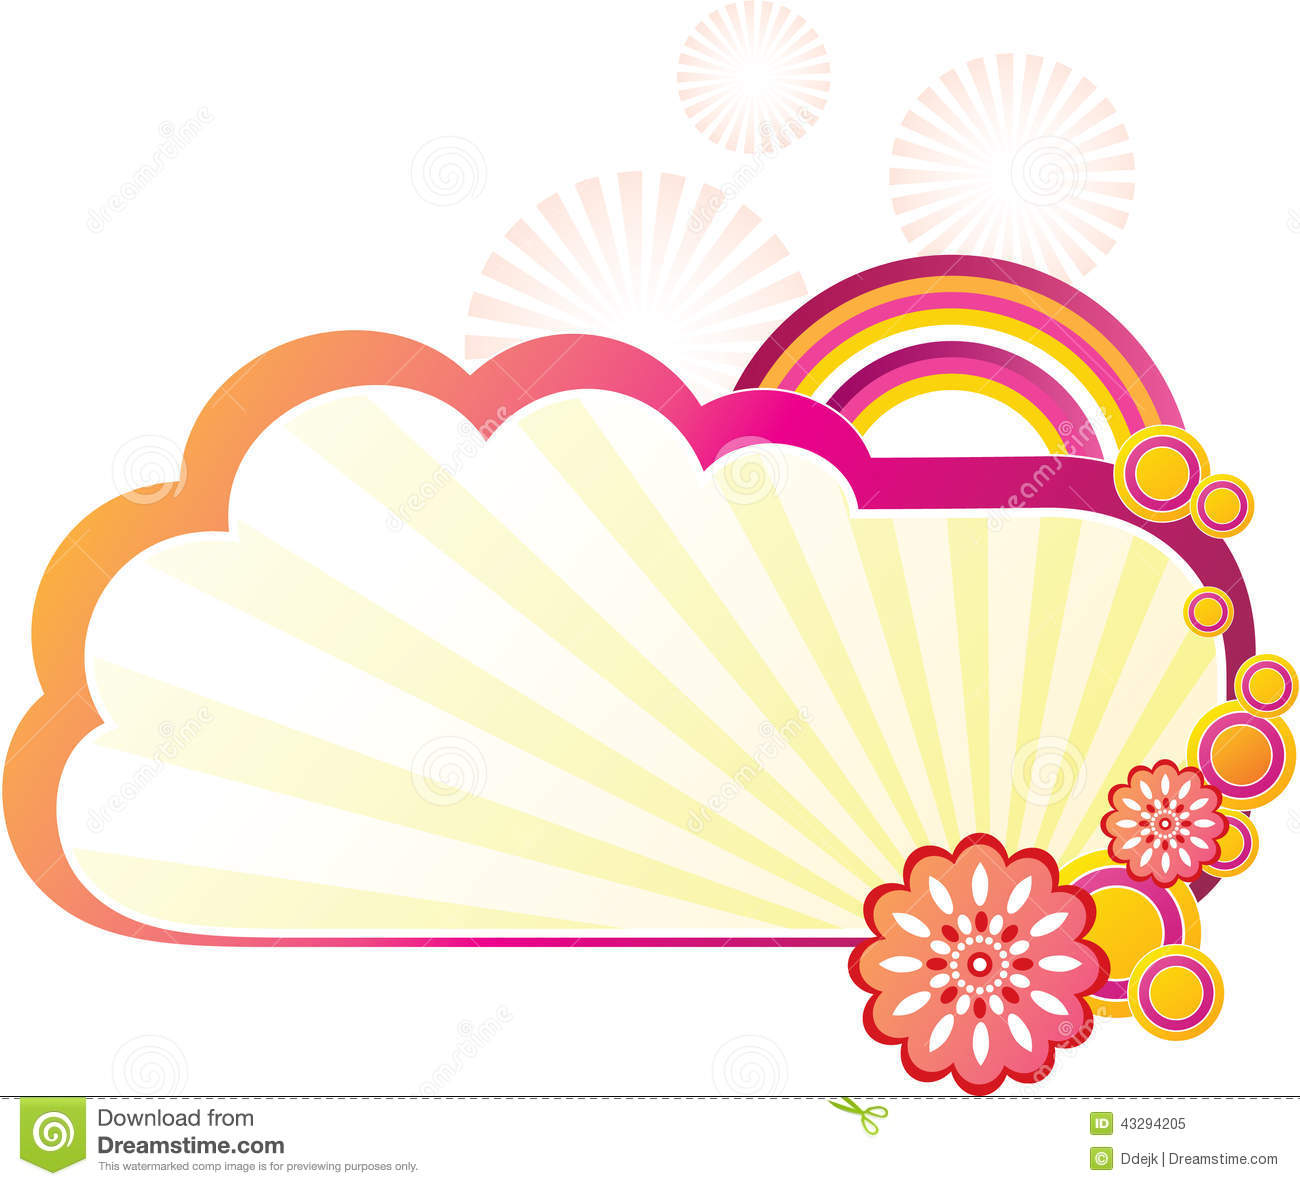 Cloud Shapes Collection Stock Illustration.